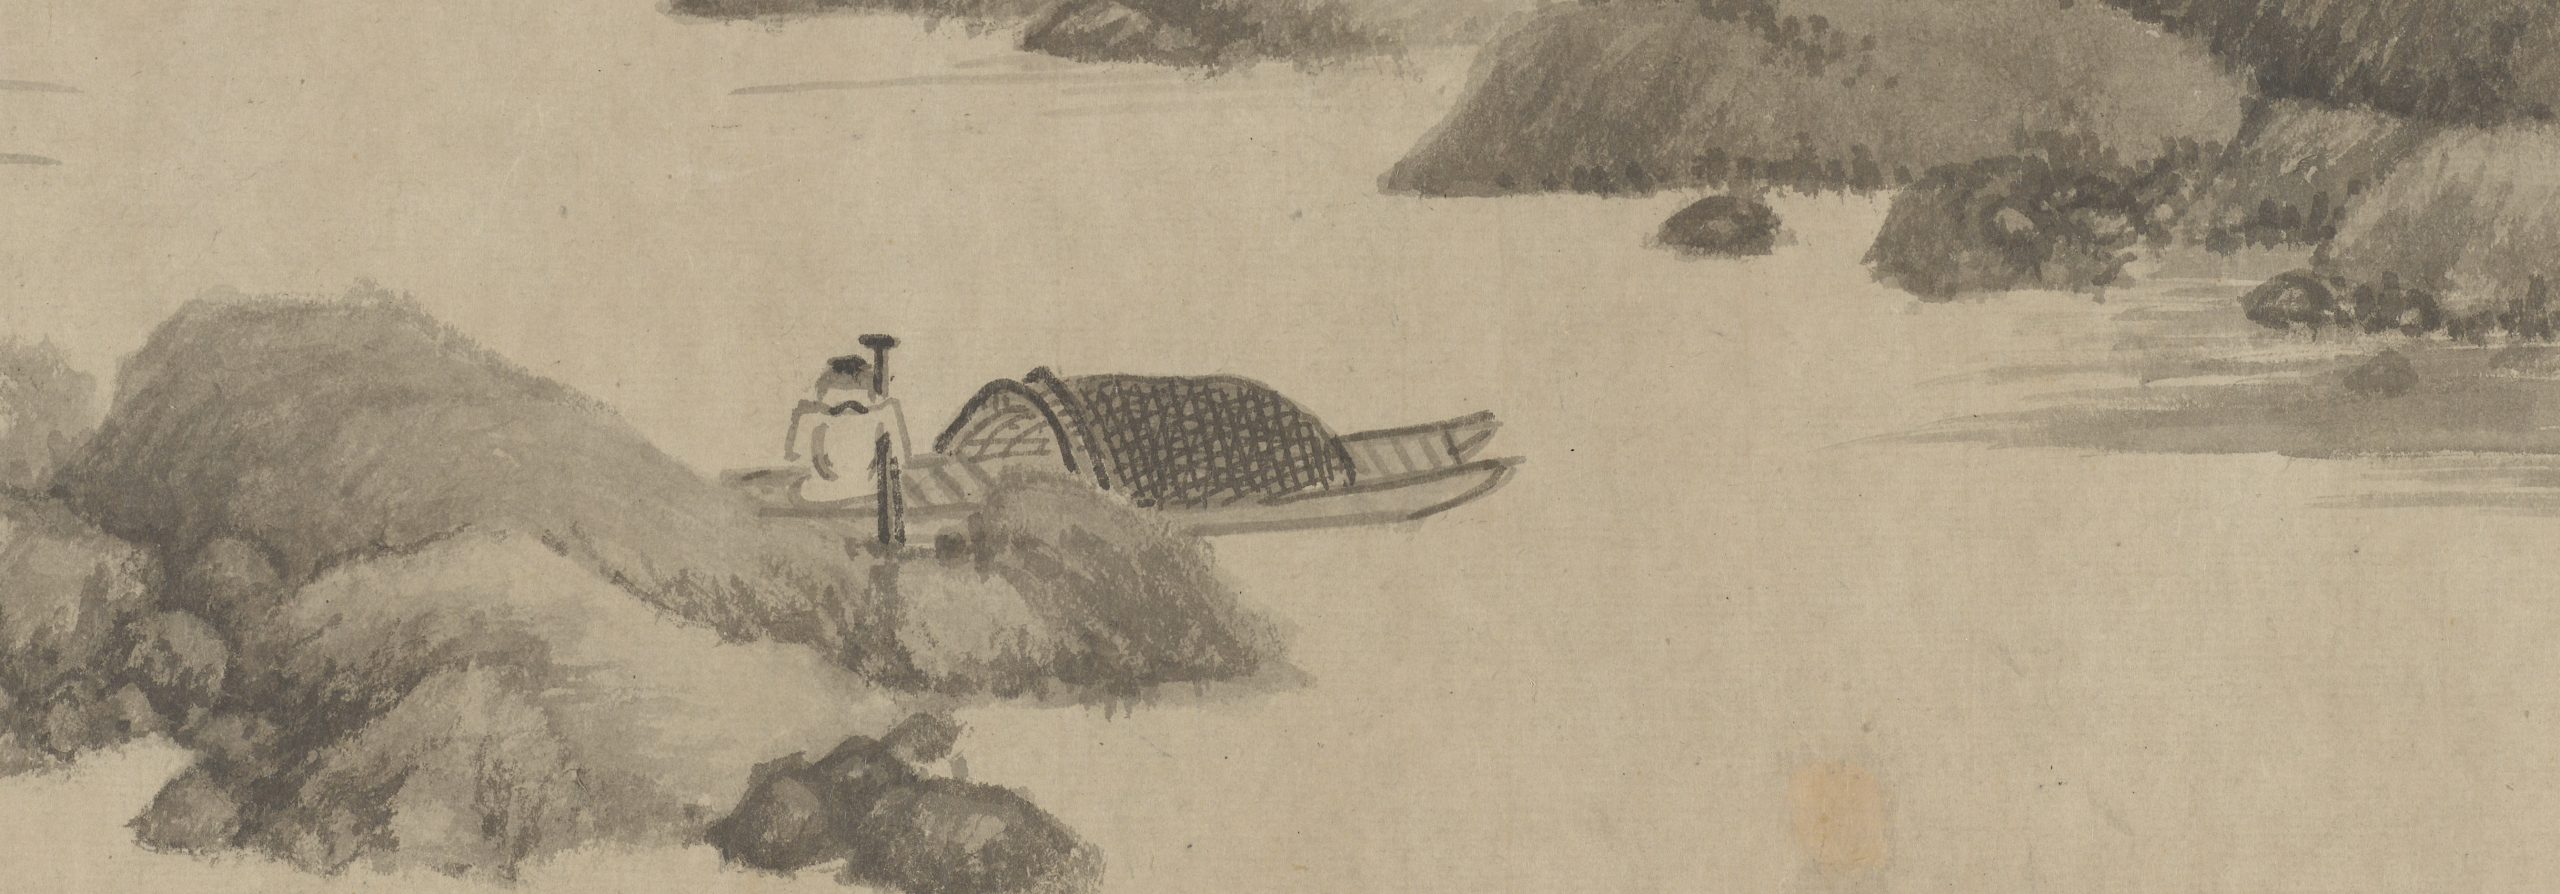 detail of pen and ink illustration of a man in a mountainous terrain